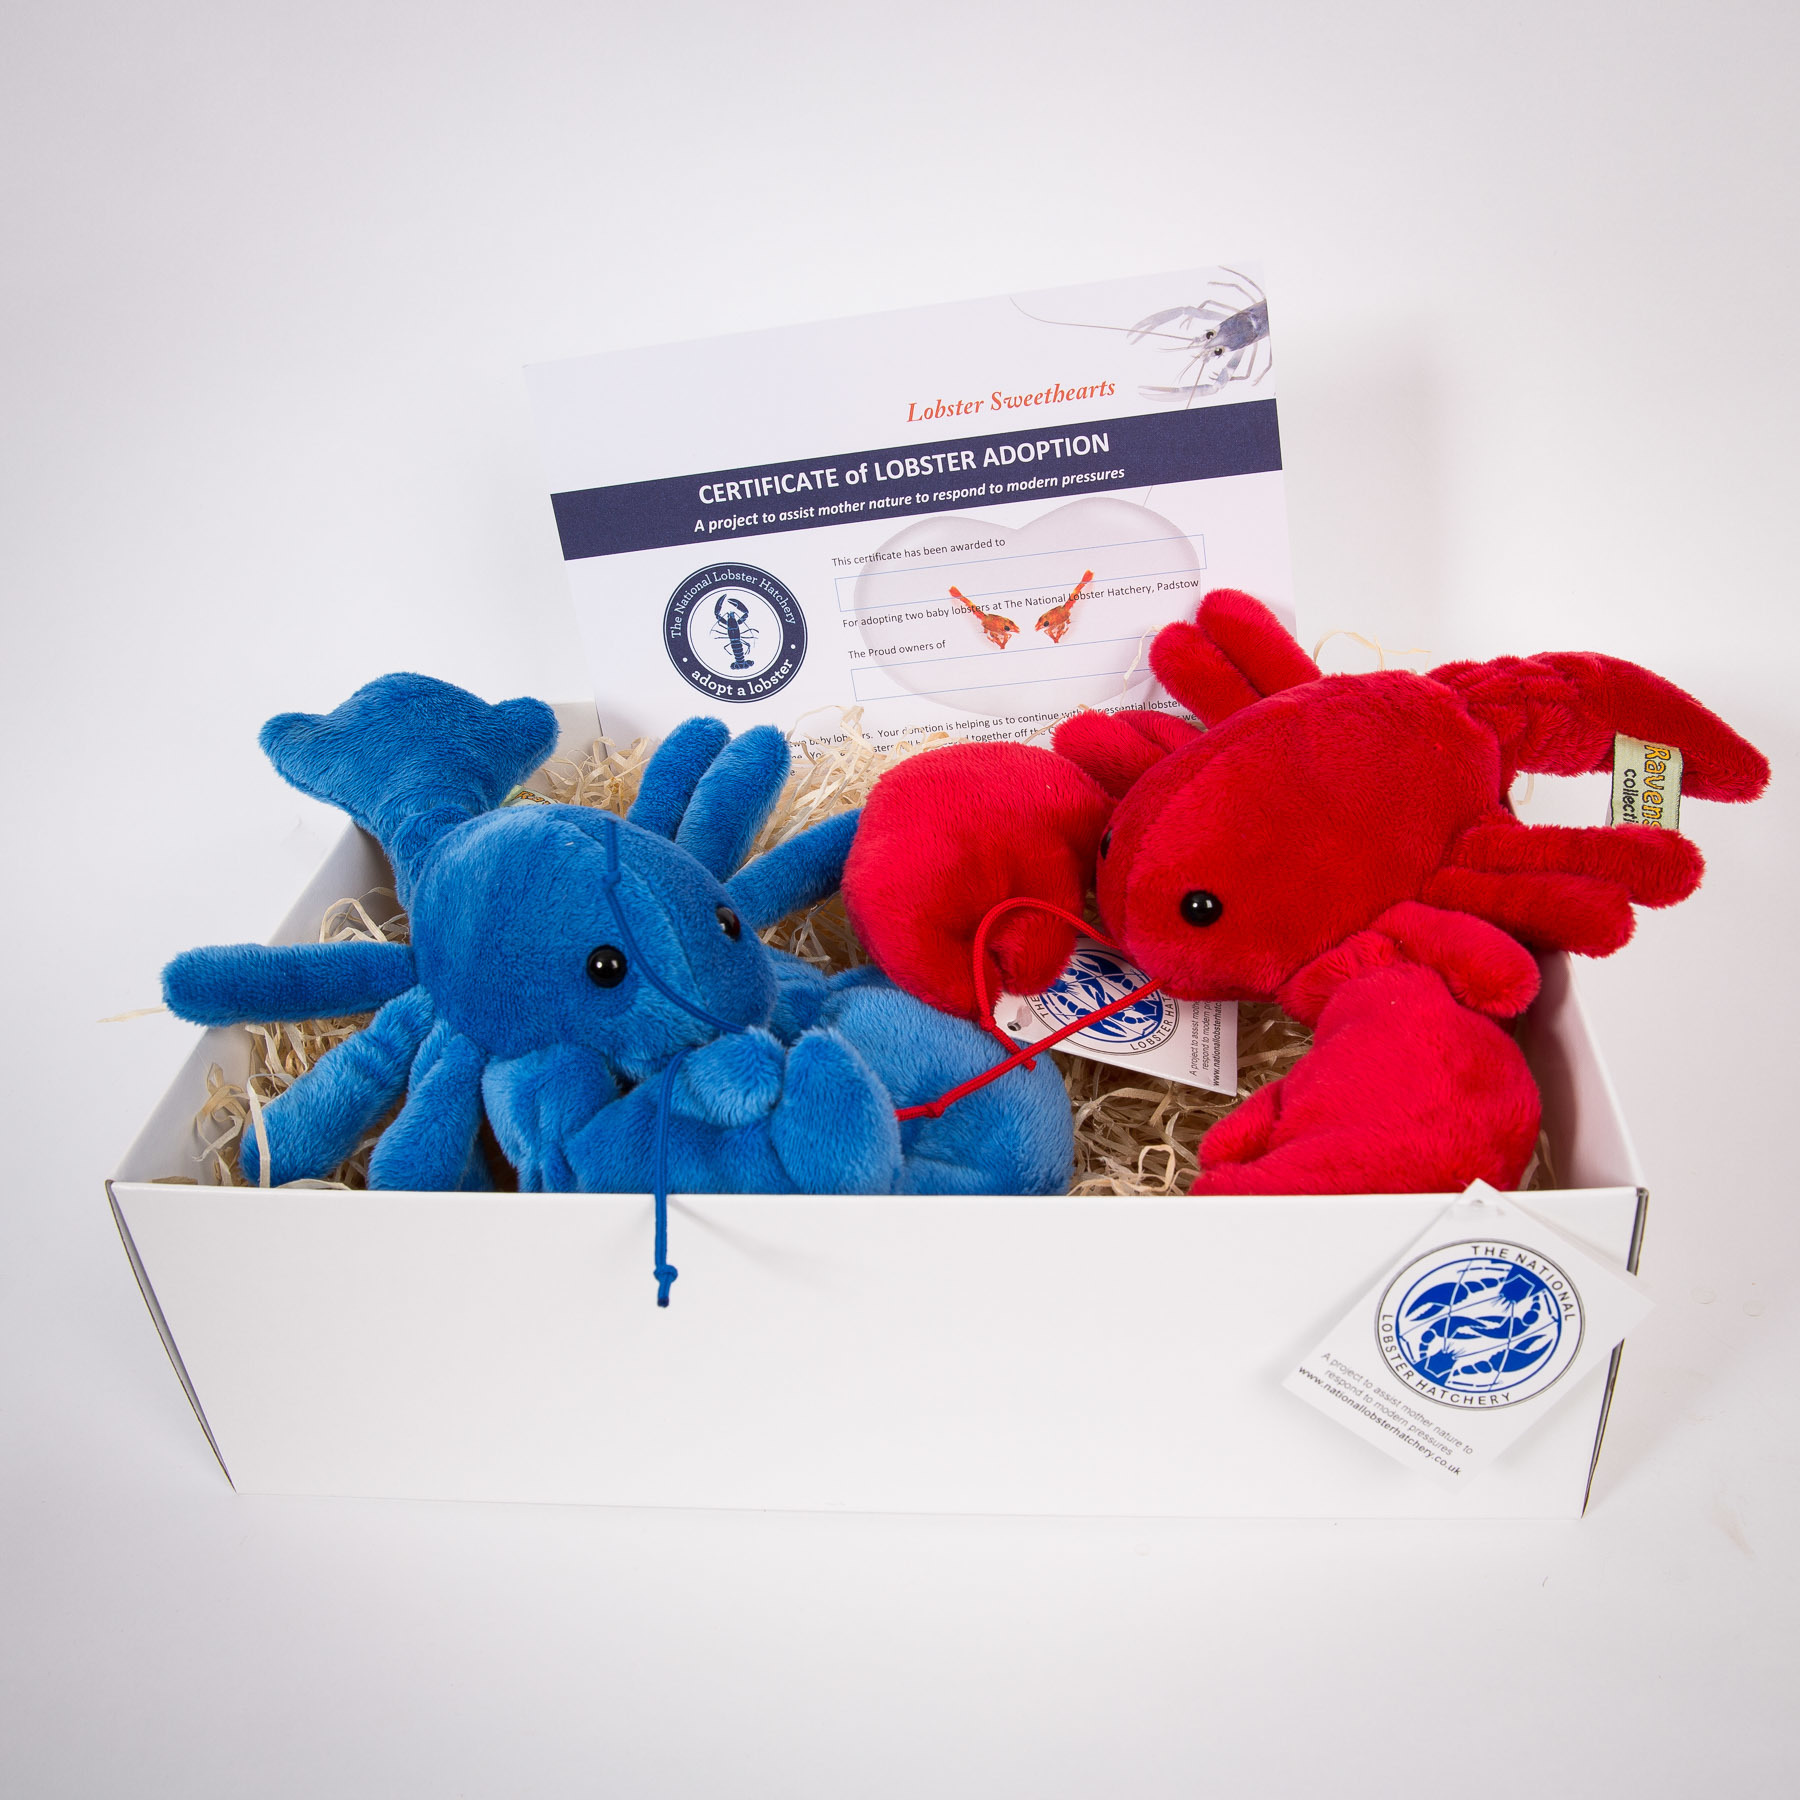 Adopt a Lobster Sweethearts Gift Pack with a red & blue fluffy lobster 00249